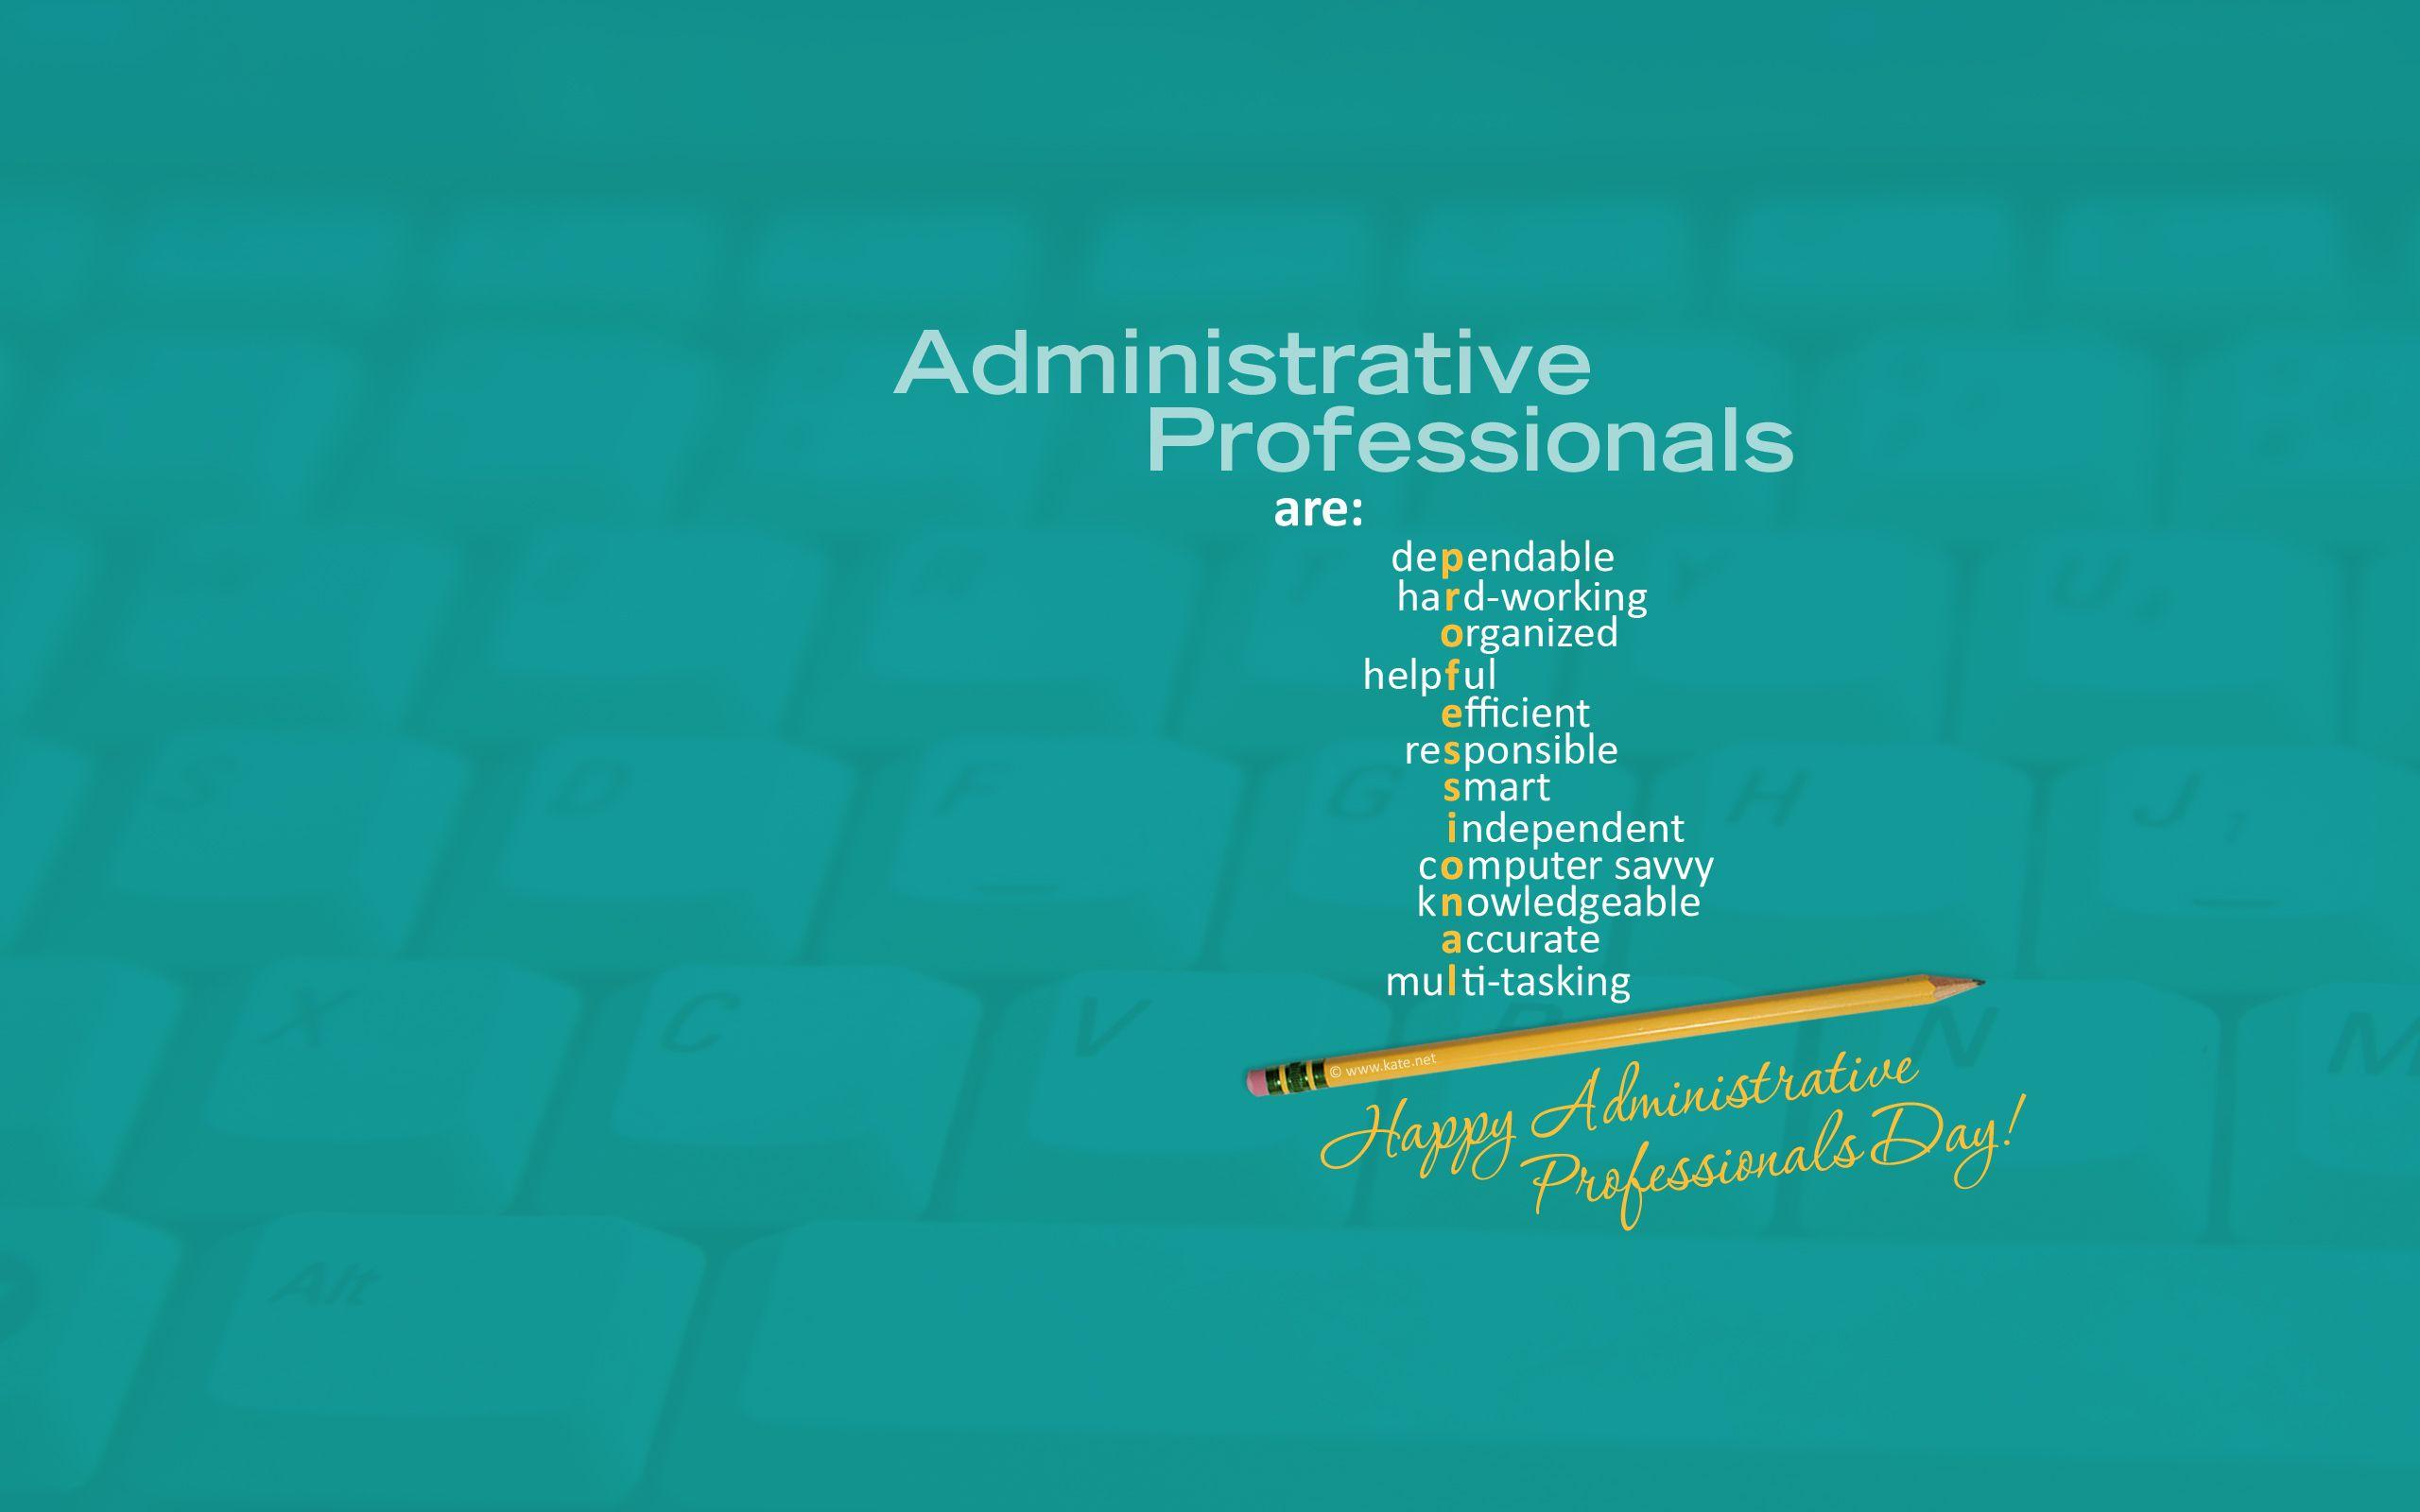 Administrative Professionals Day Wallpapers by Kate